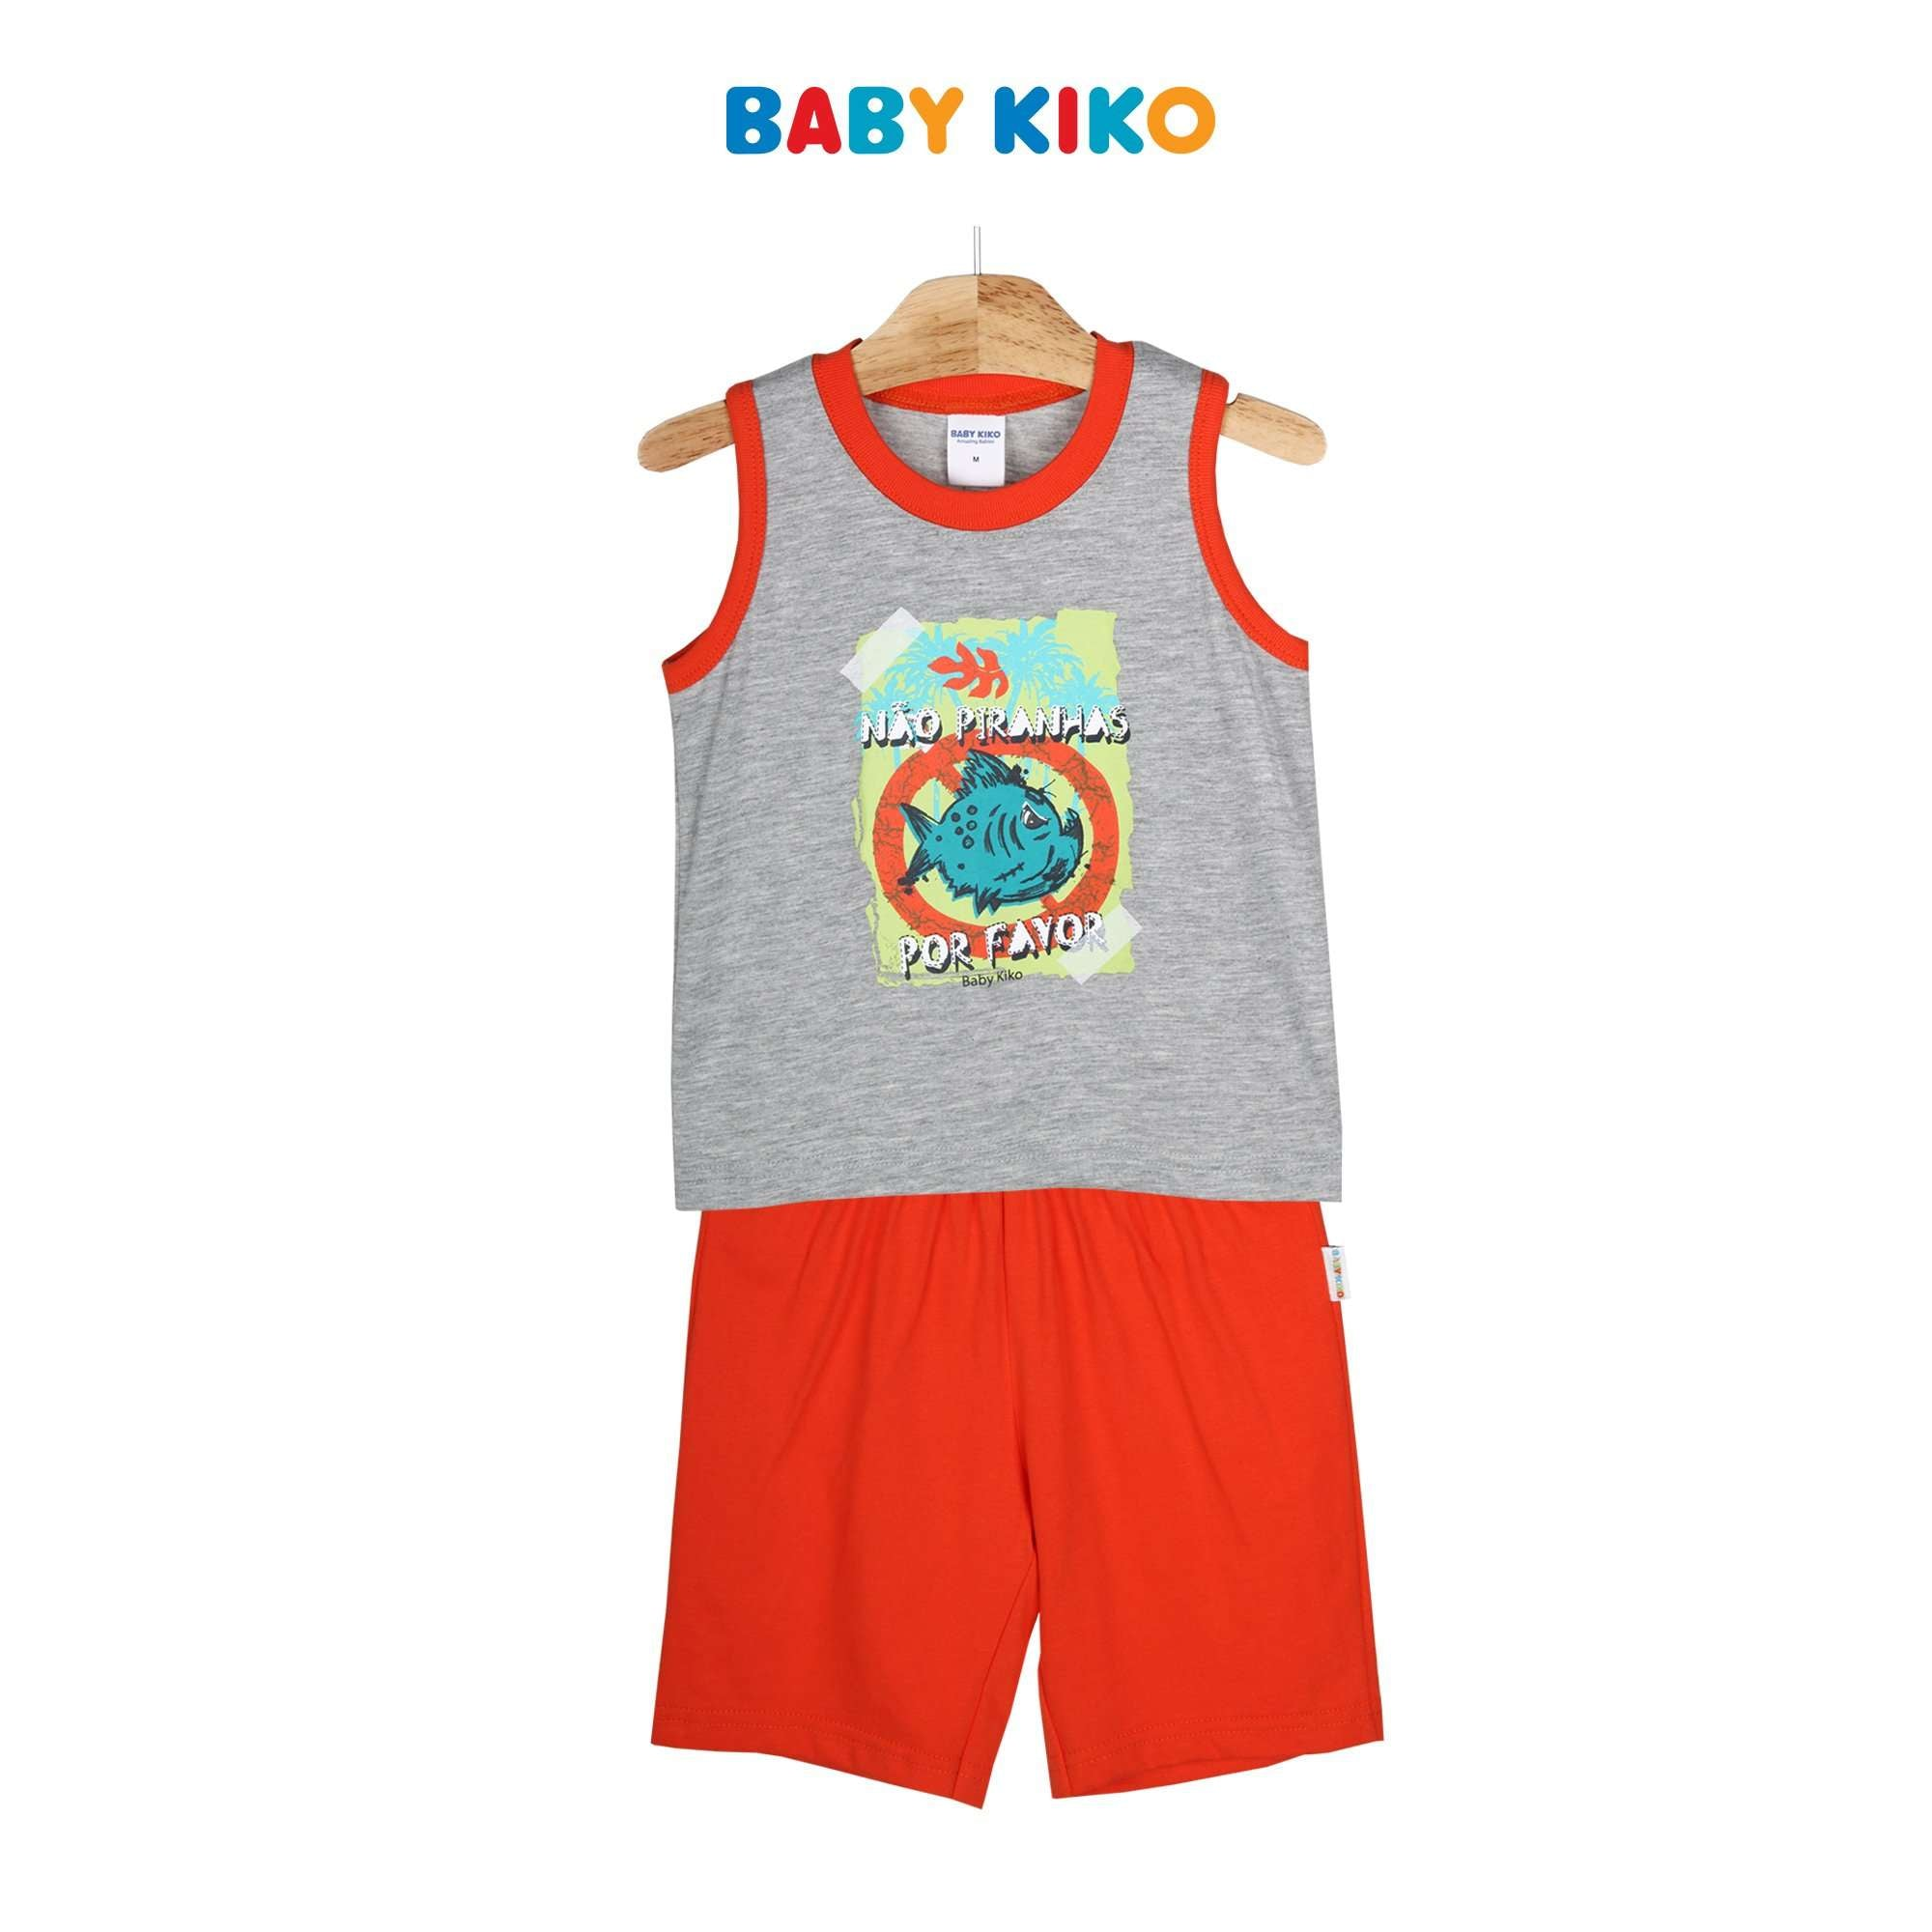 Baby KIKO Toddler Boy Short Sleeve Bermuda Suit 325149-403 : Buy Baby KIKO online at CMG.MY